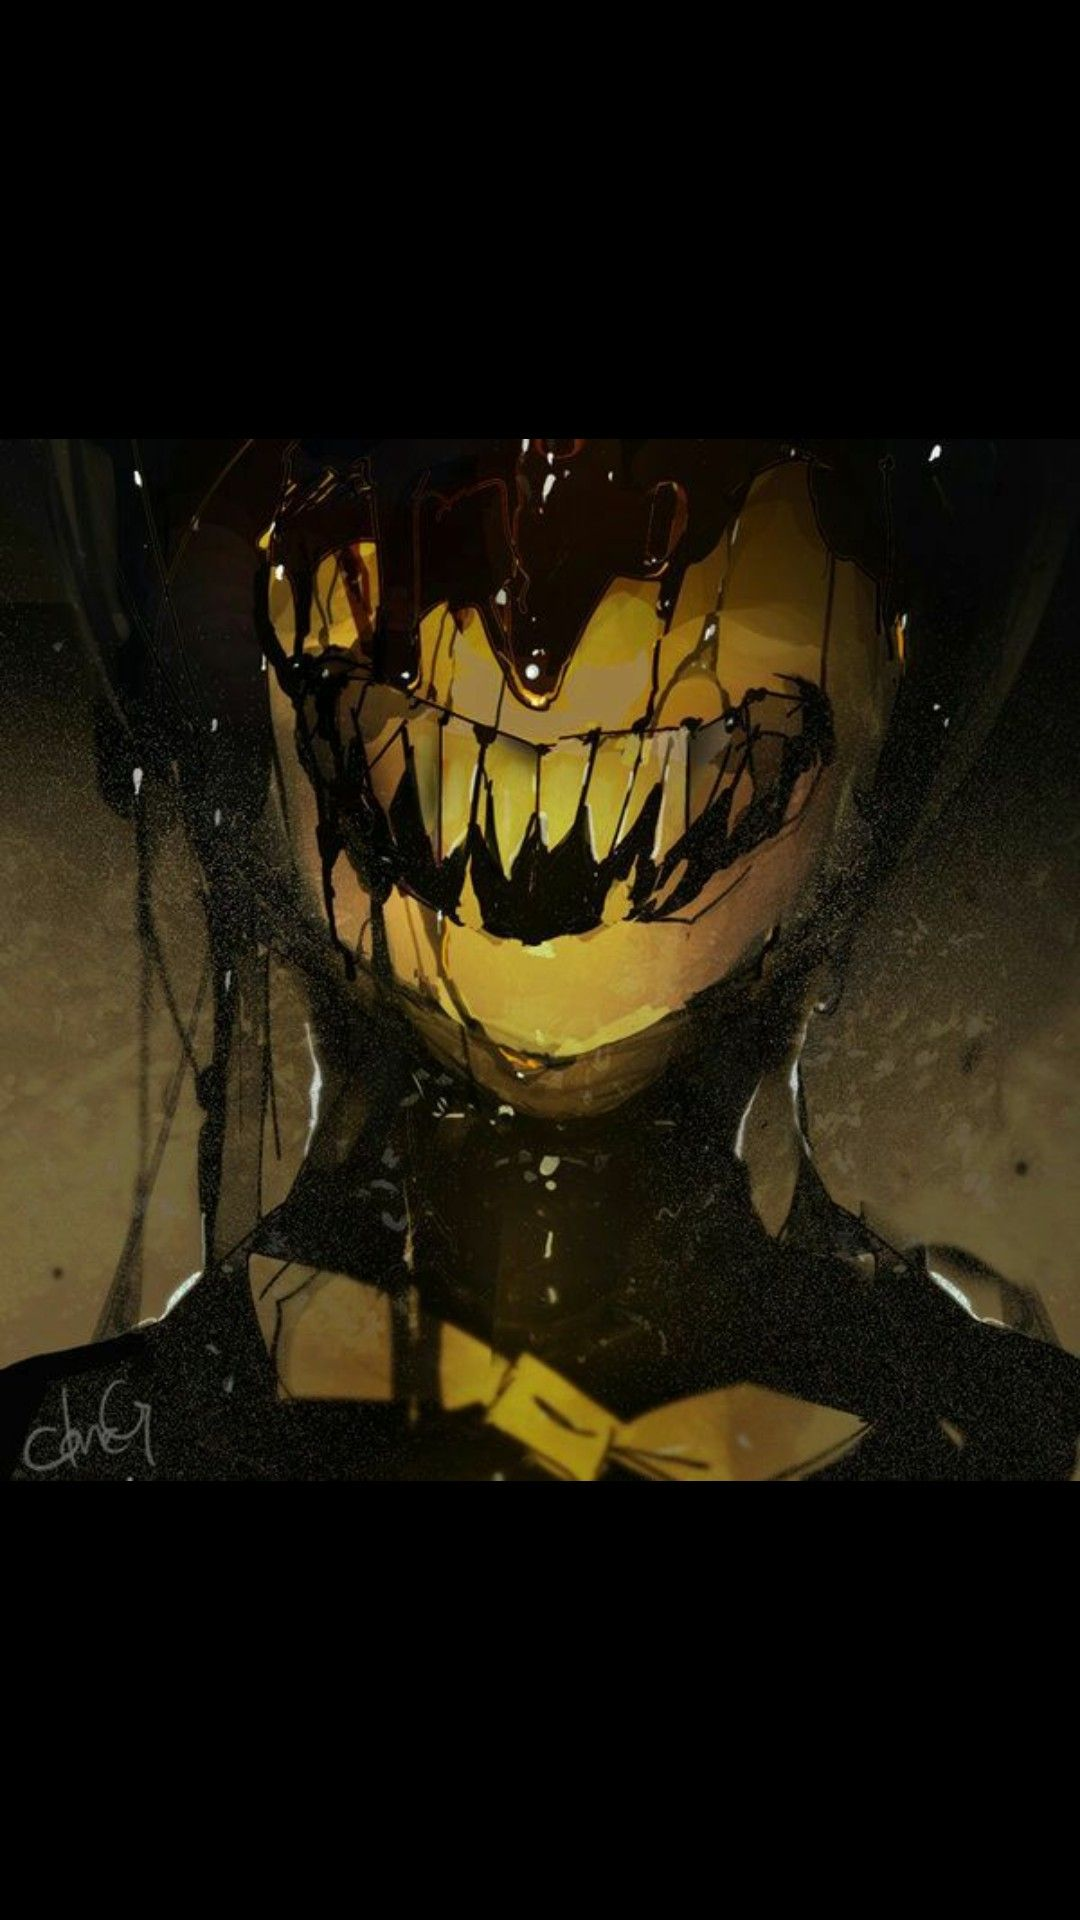 Bendy And The Ink Machine Wallpapers Top Free Bendy And The Ink